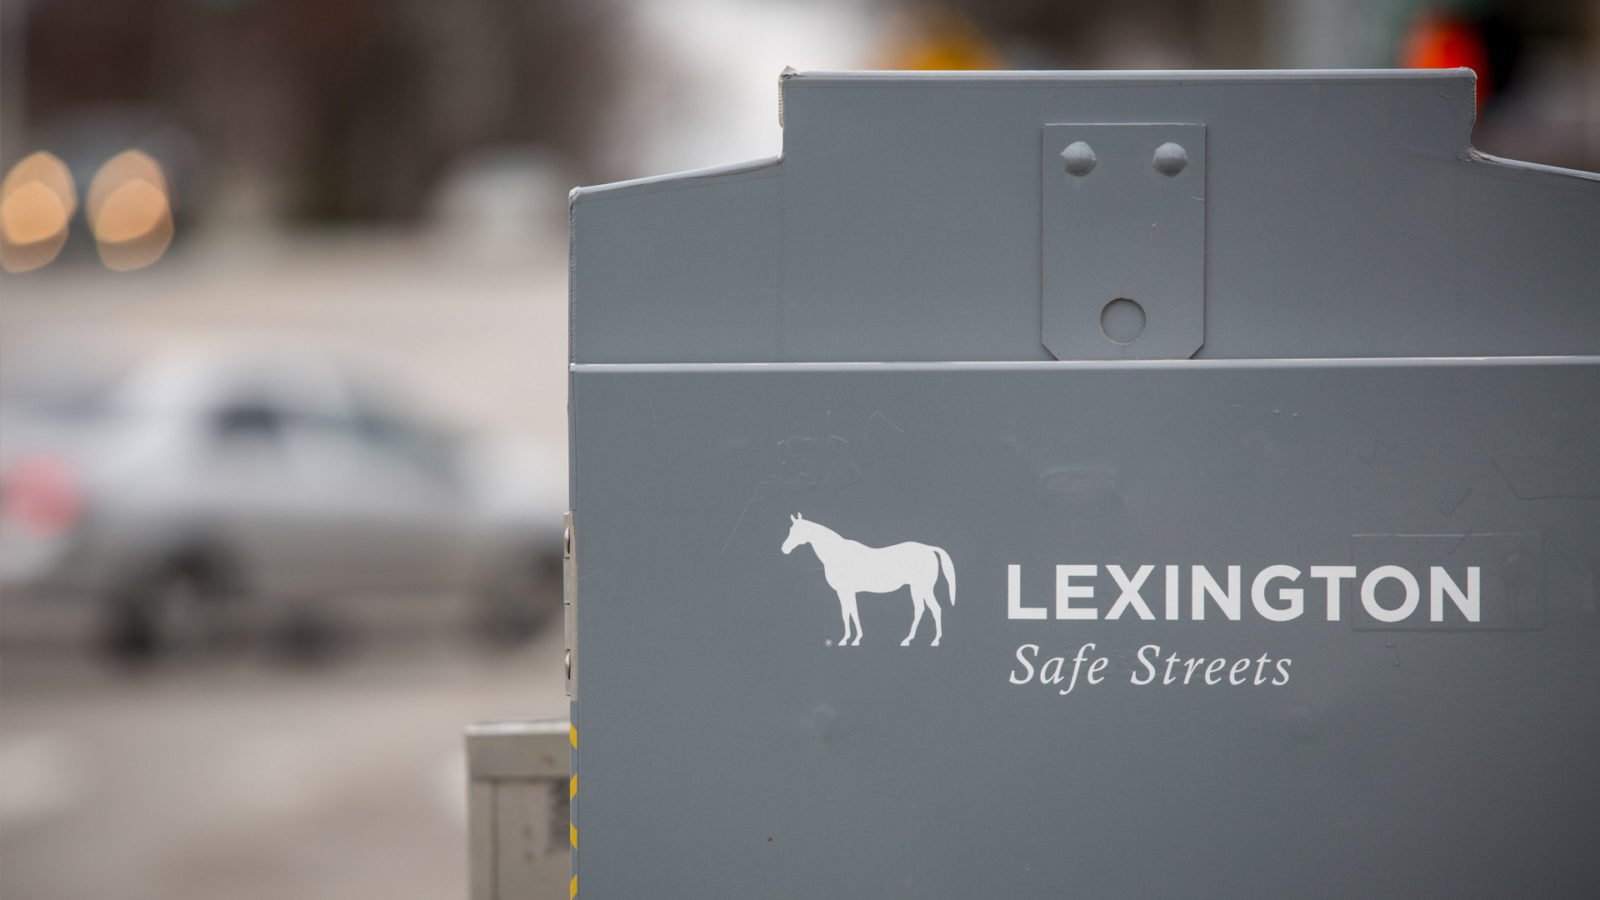 A Brand Identity for City of Lexington Safe Streets by Bullhorn Creative